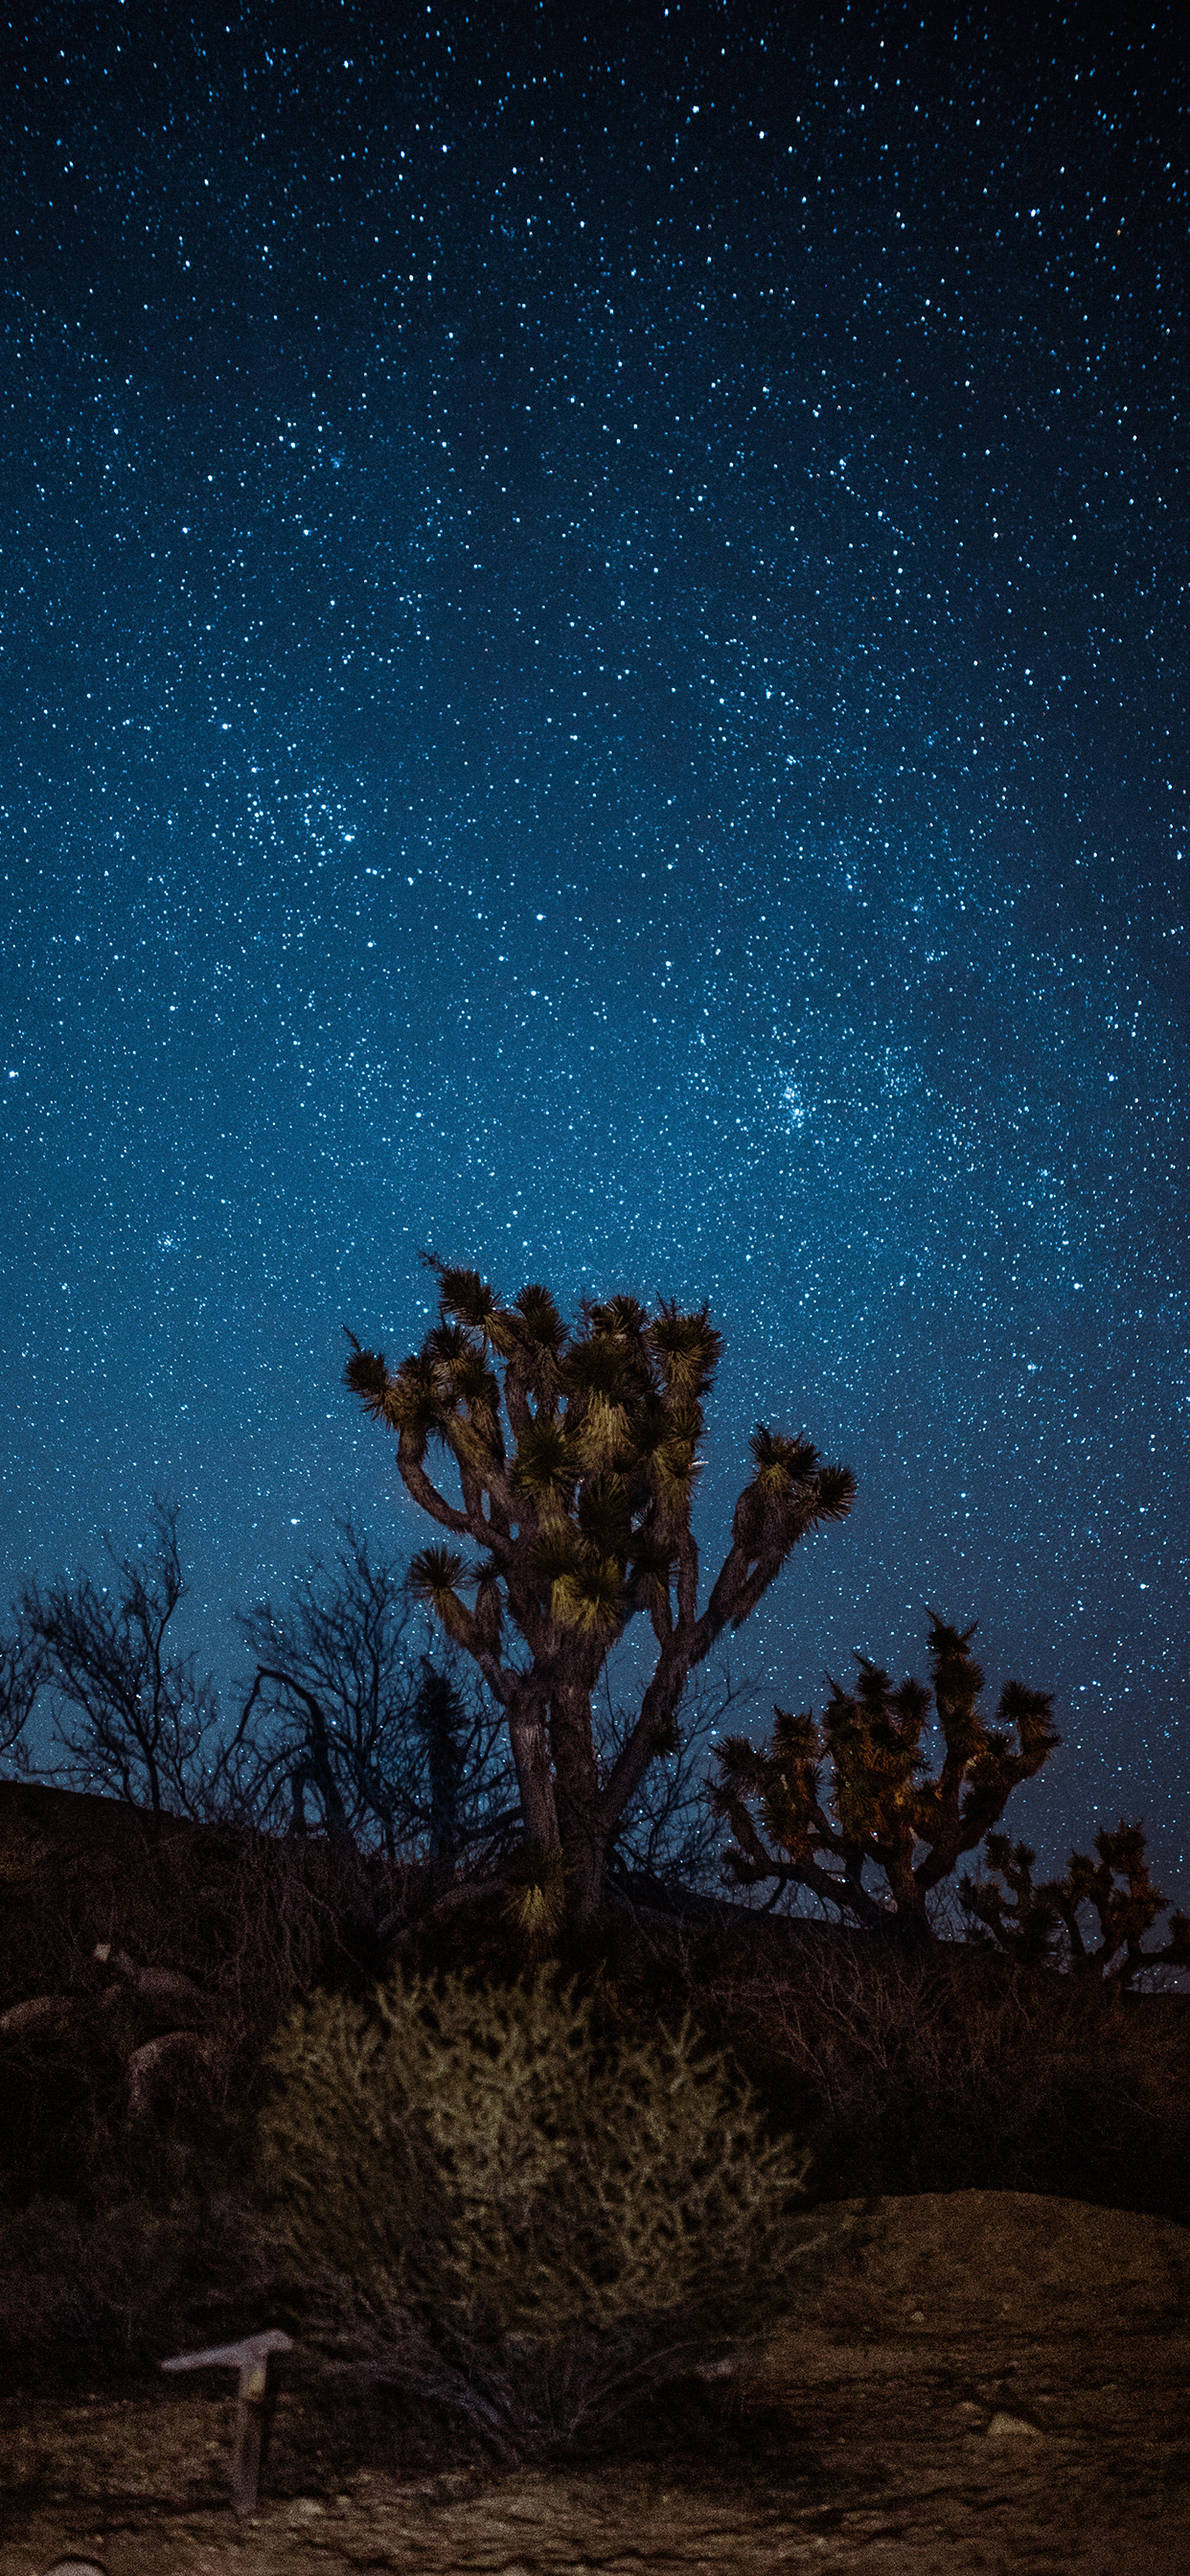 iPhone wallpaper stars joshua tree Fonds d'écran iPhone du 29/04/2019